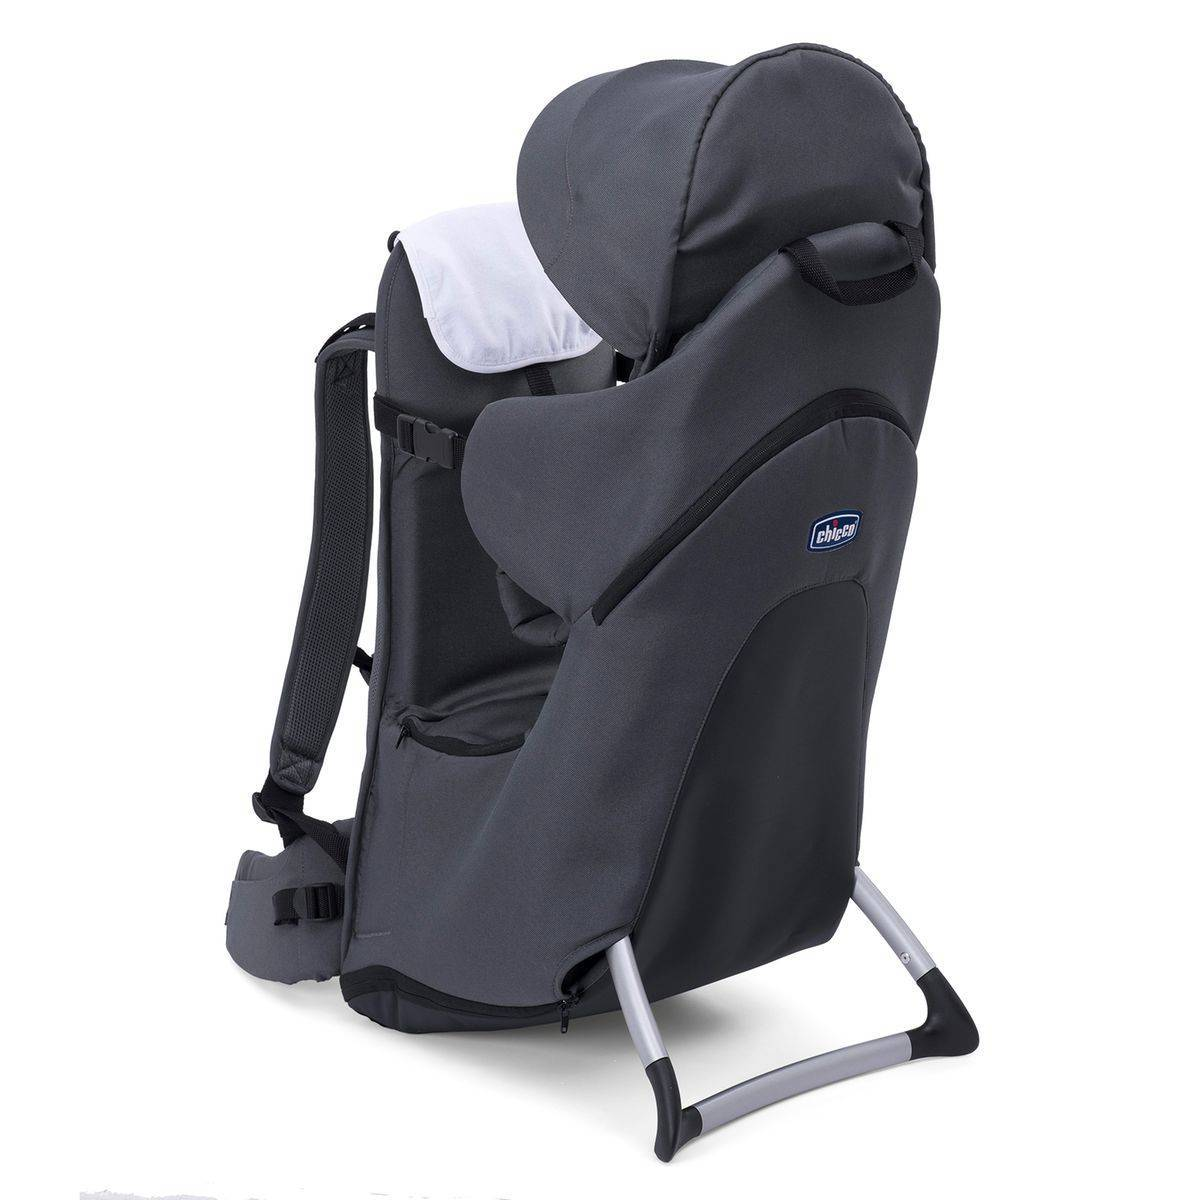 Chicco Porte-bébé dorsal FInder, stone - CHICCO